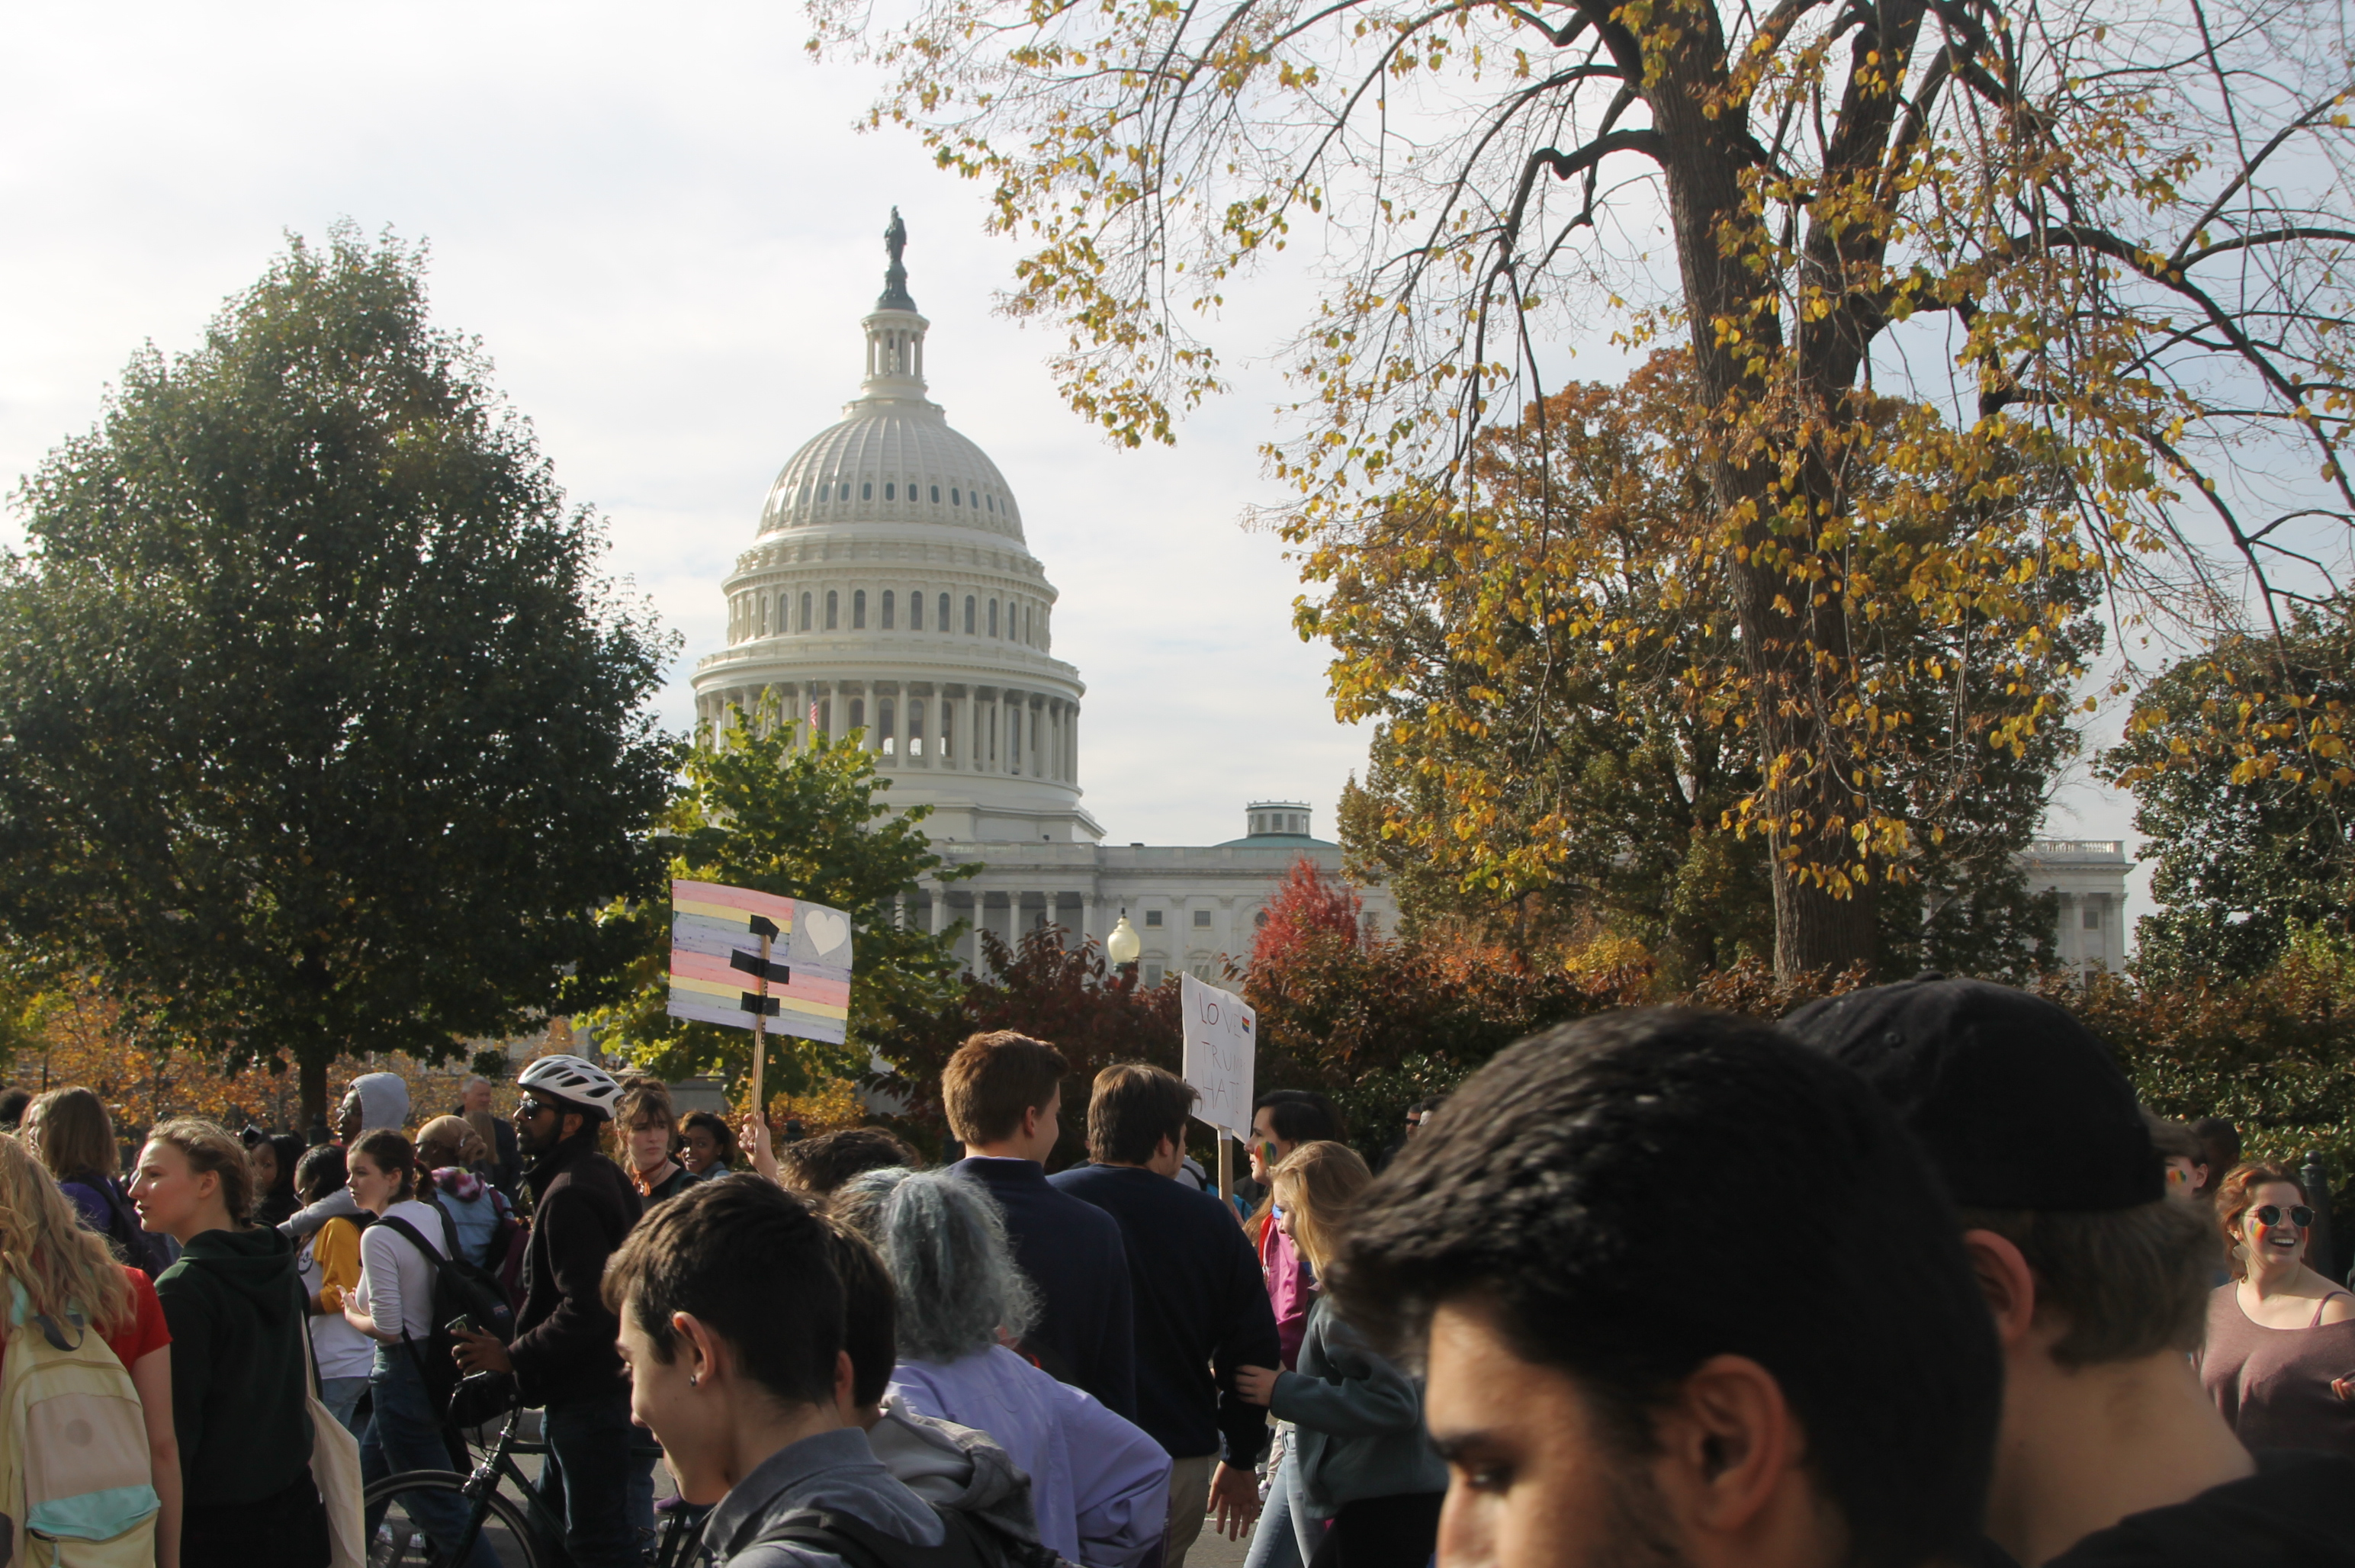 DC youth make their voices heard in peaceful demonstration